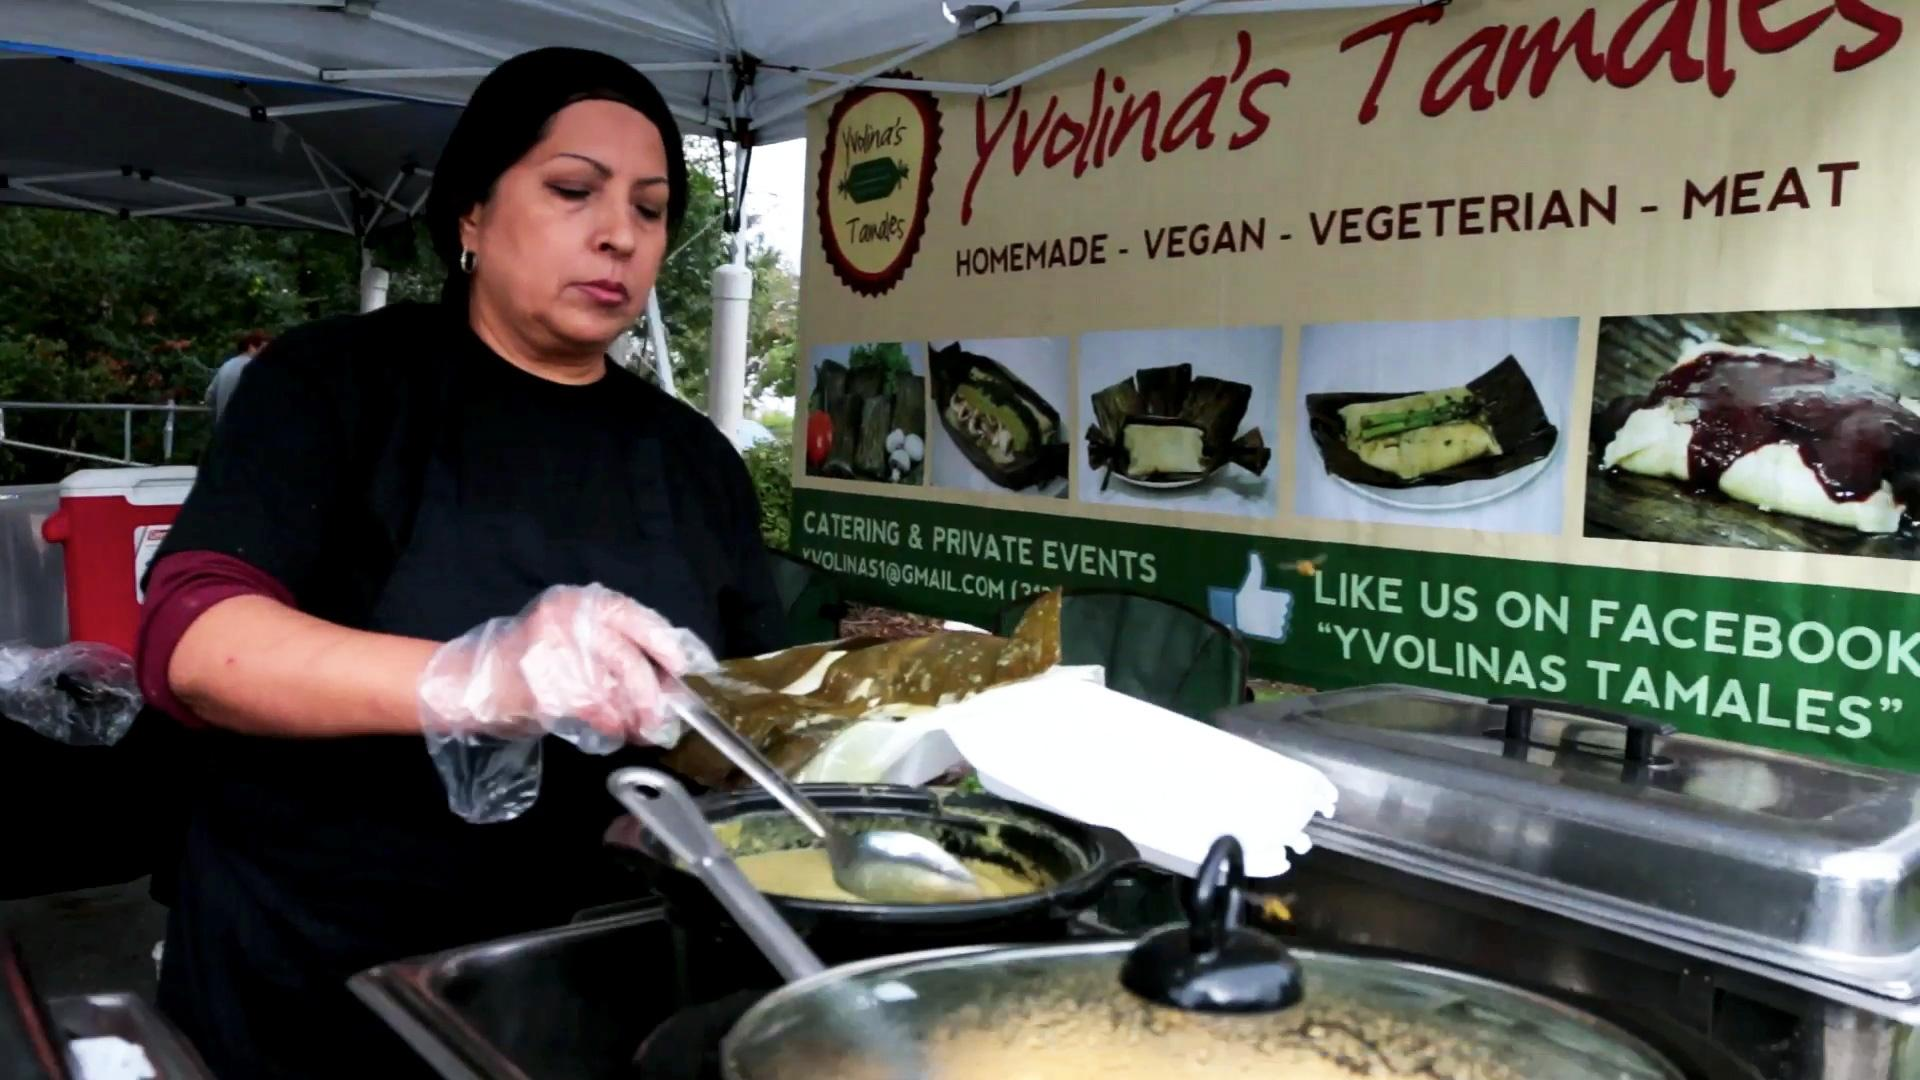 Yvolina: From Street Vendor to Restaurant Owner